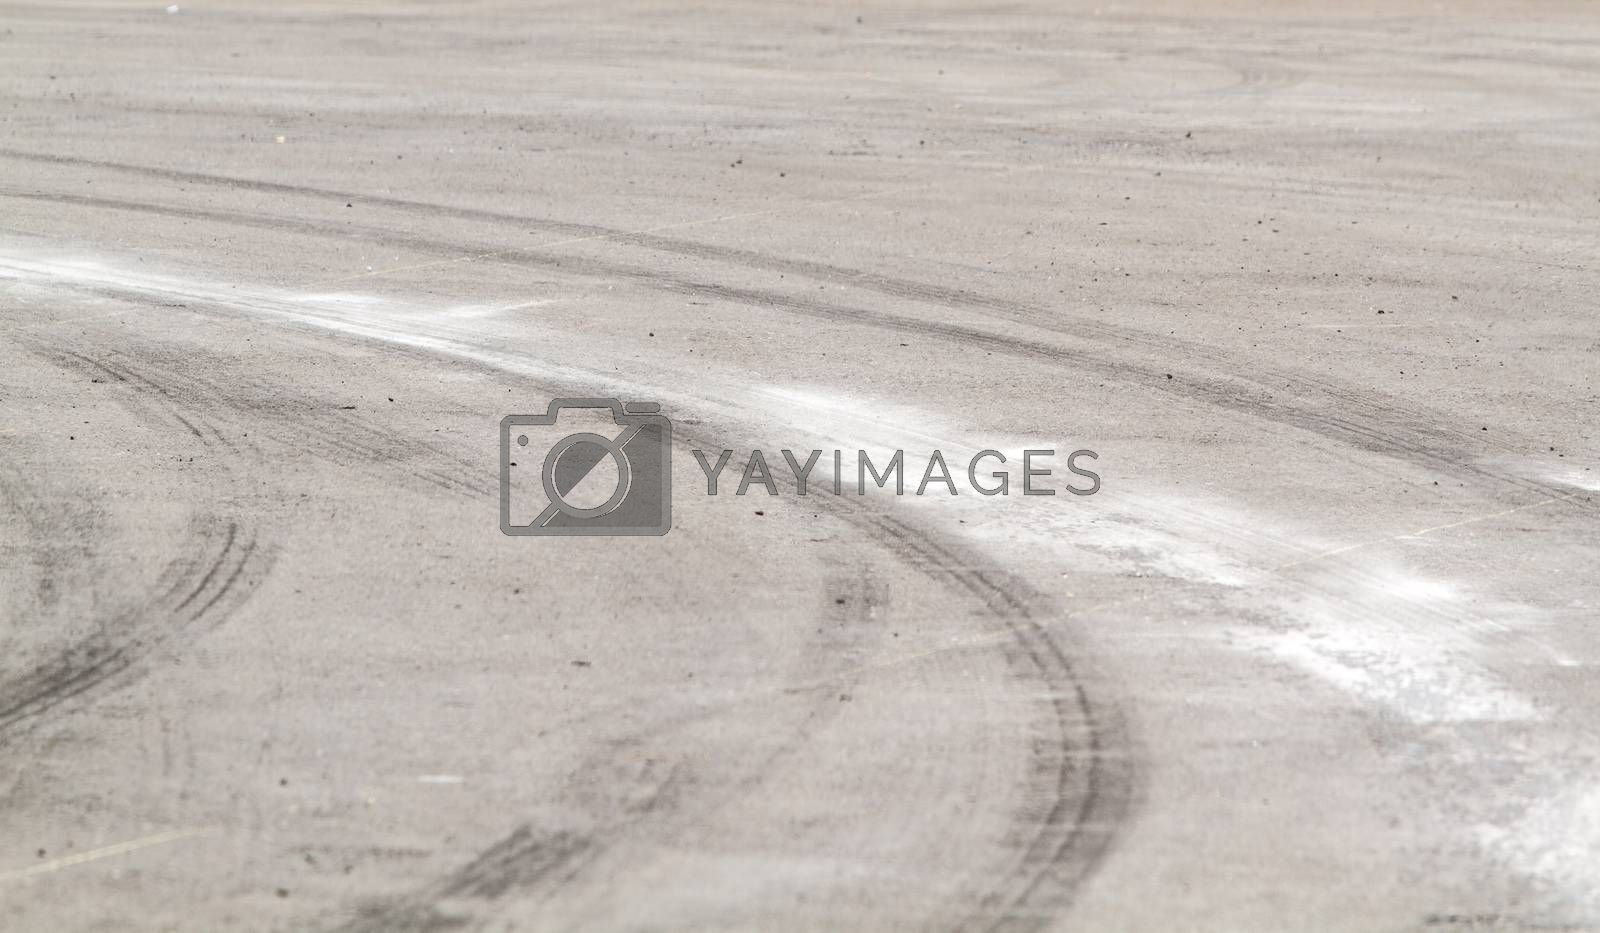 Royalty free image of Tire marks on road track by liewluck